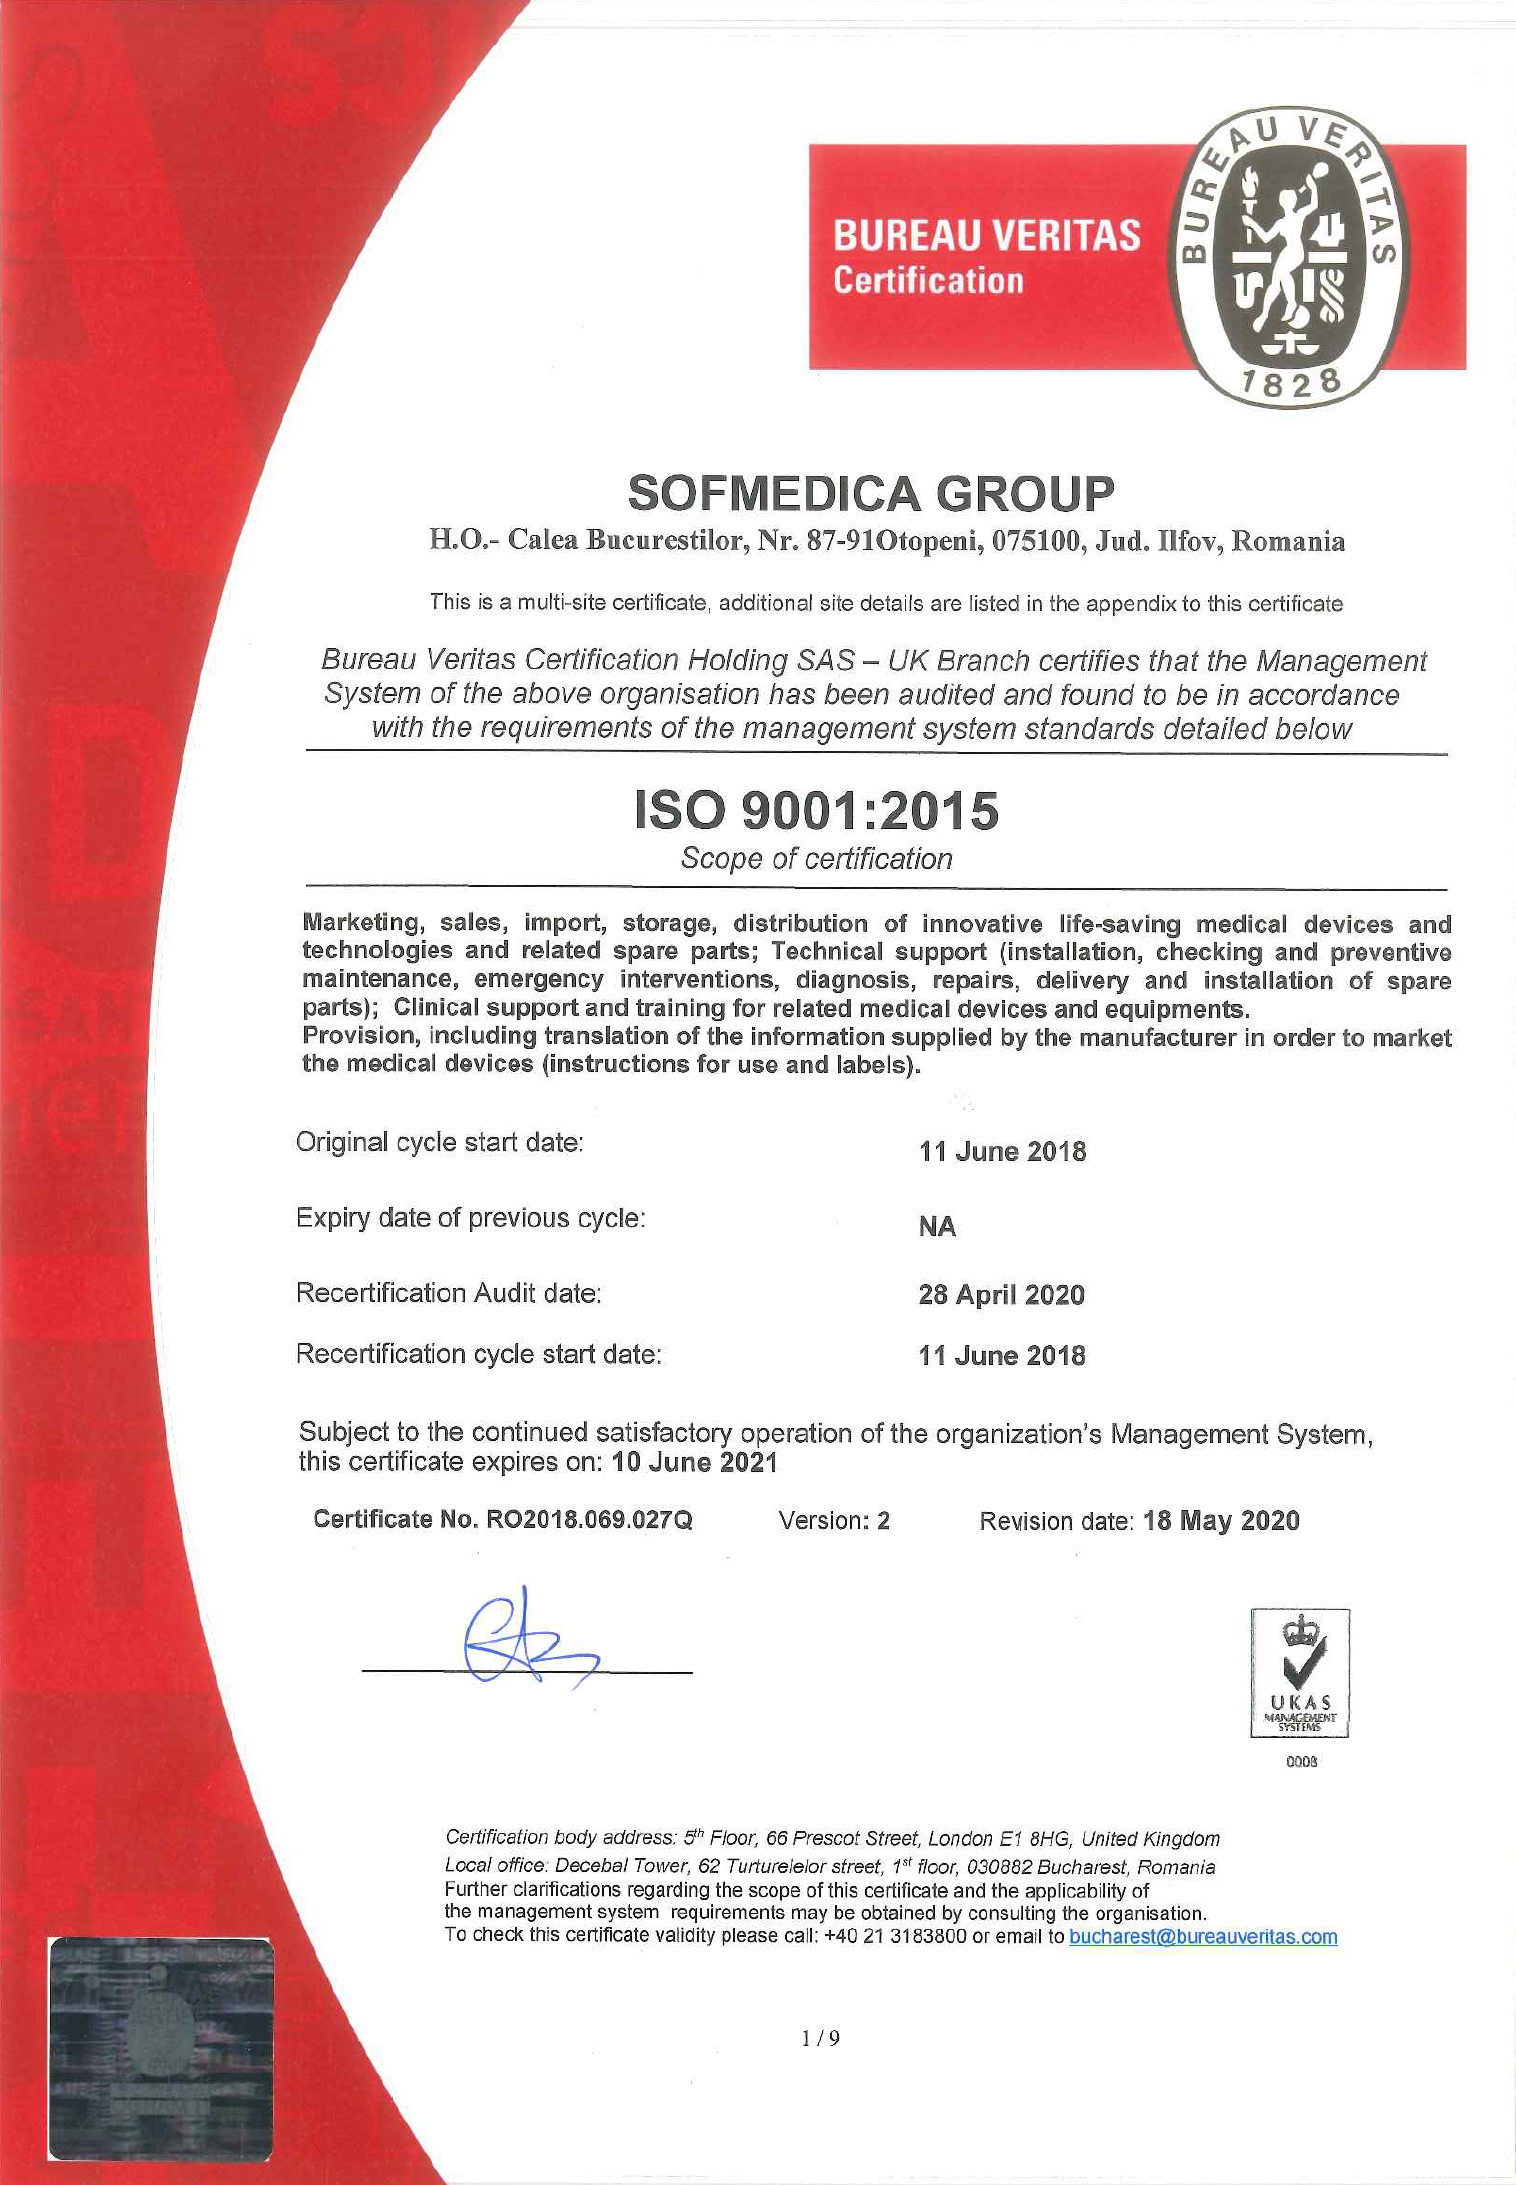 new-iso-certificate-sfm-group